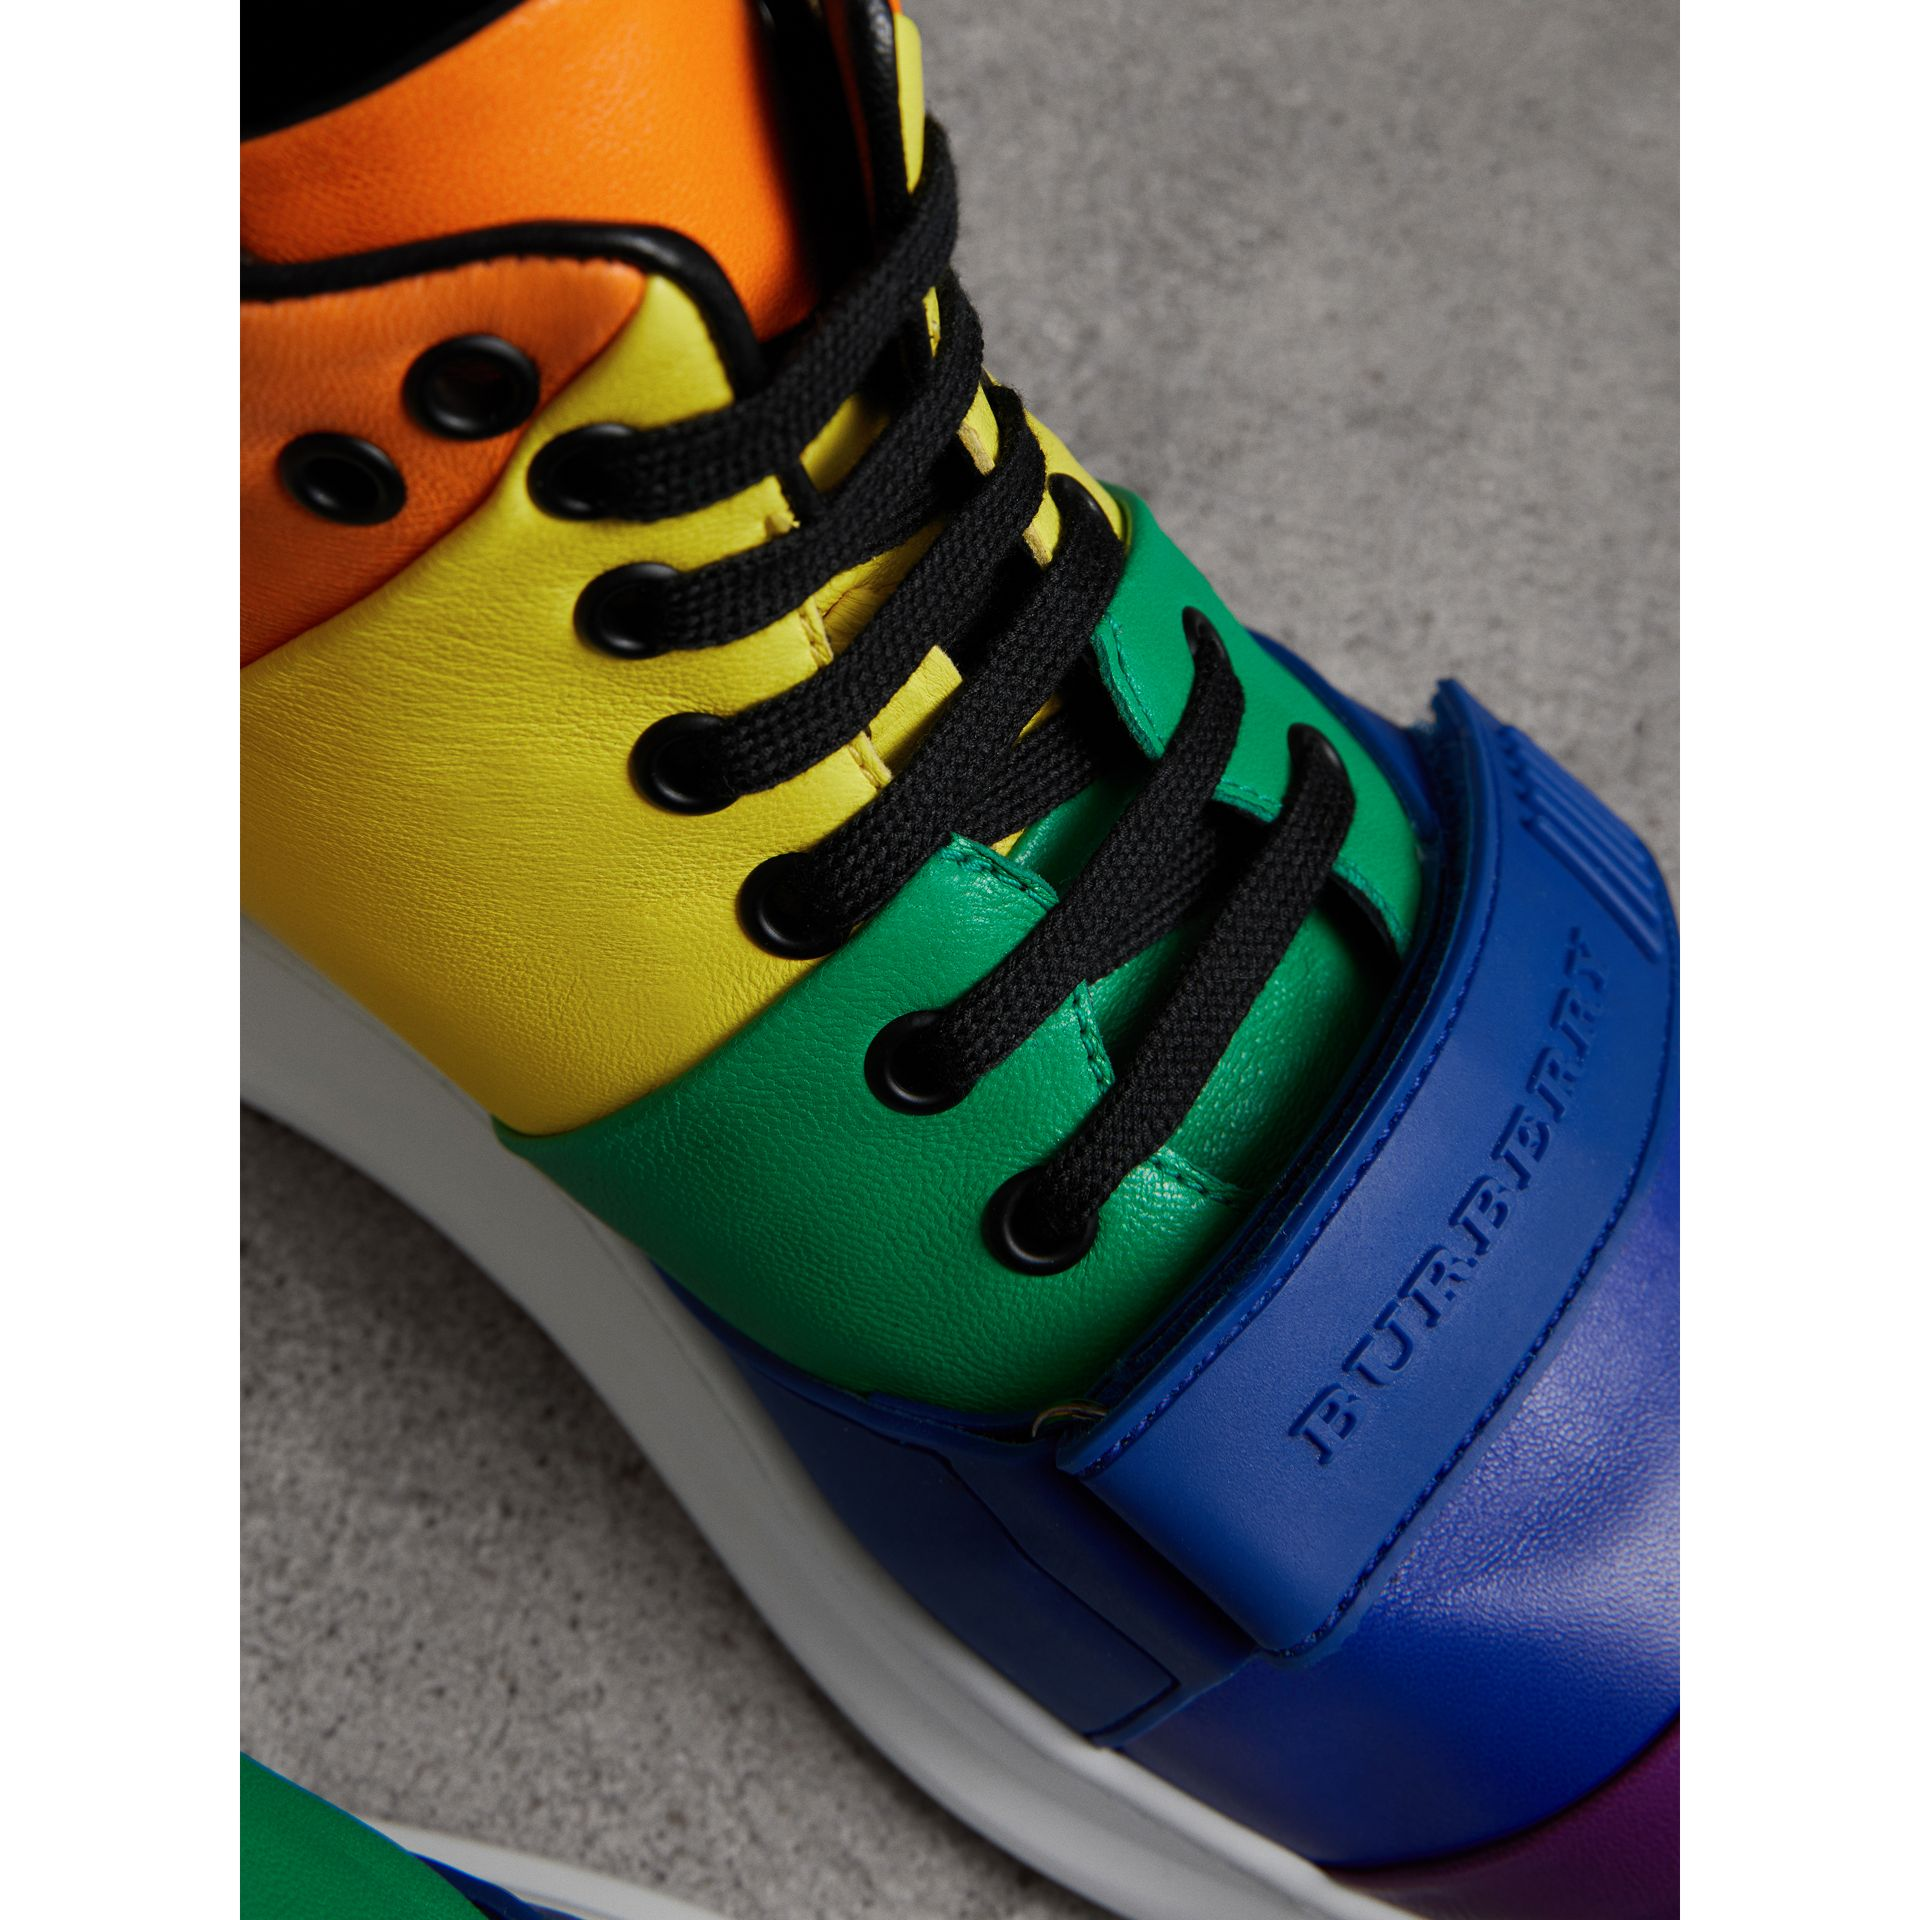 Sneakers montantes en cuir arc-en-ciel | Burberry - photo de la galerie 1